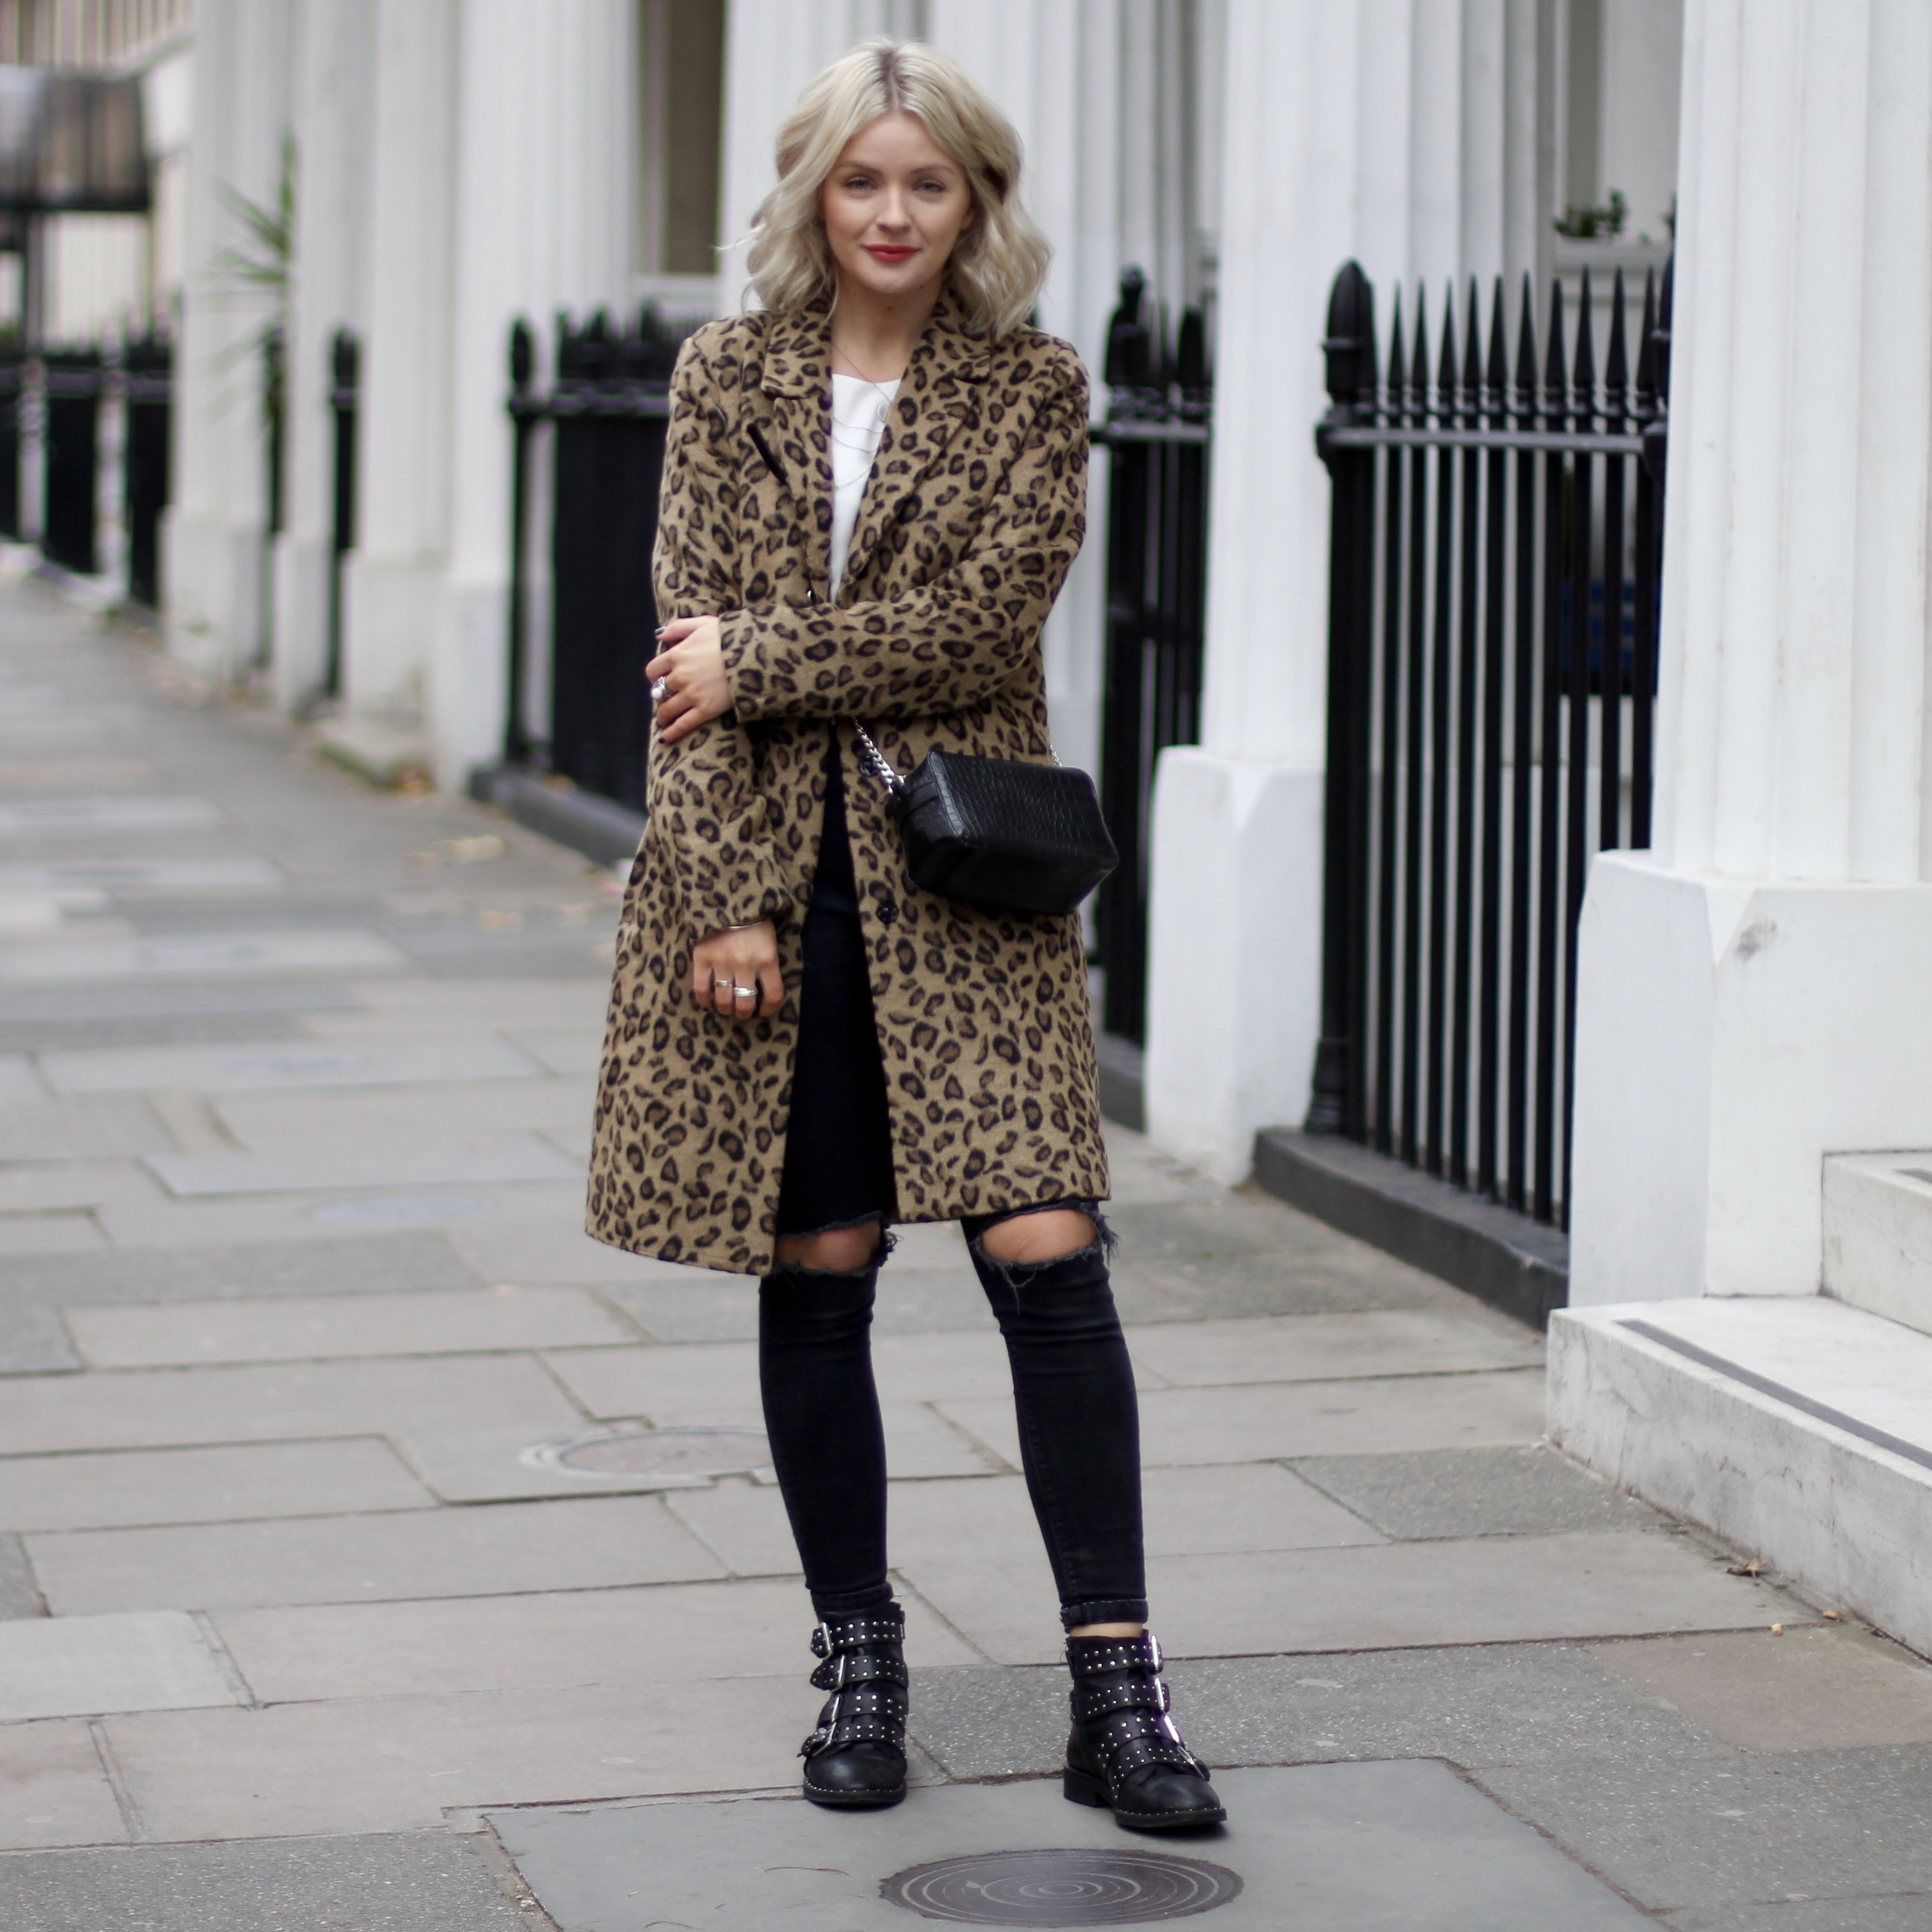 laura byrnes, lauras little locket, fashion blogger, grey oversized jumper, leopard print coat, autumnal clothes, how to dress in autumn, black stud boots, black jeans, black mia fiorelli bag, blonde wavy hair, red lip, black over body bag, red lipstick